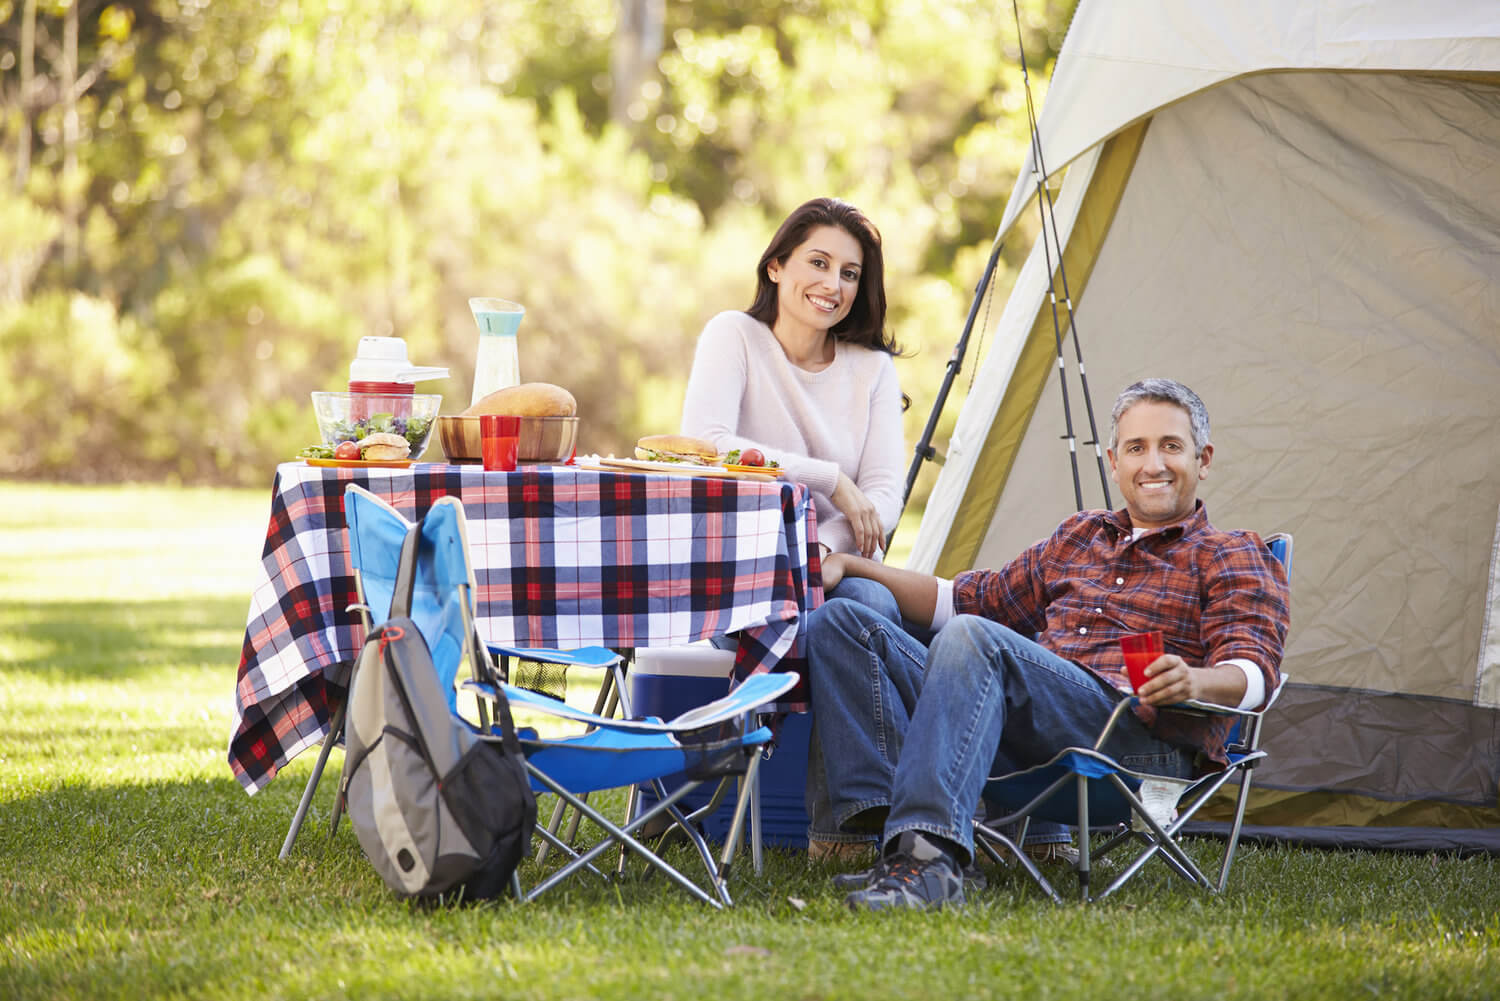 man and woman sitting close together at a campsite during a sunny afternoon